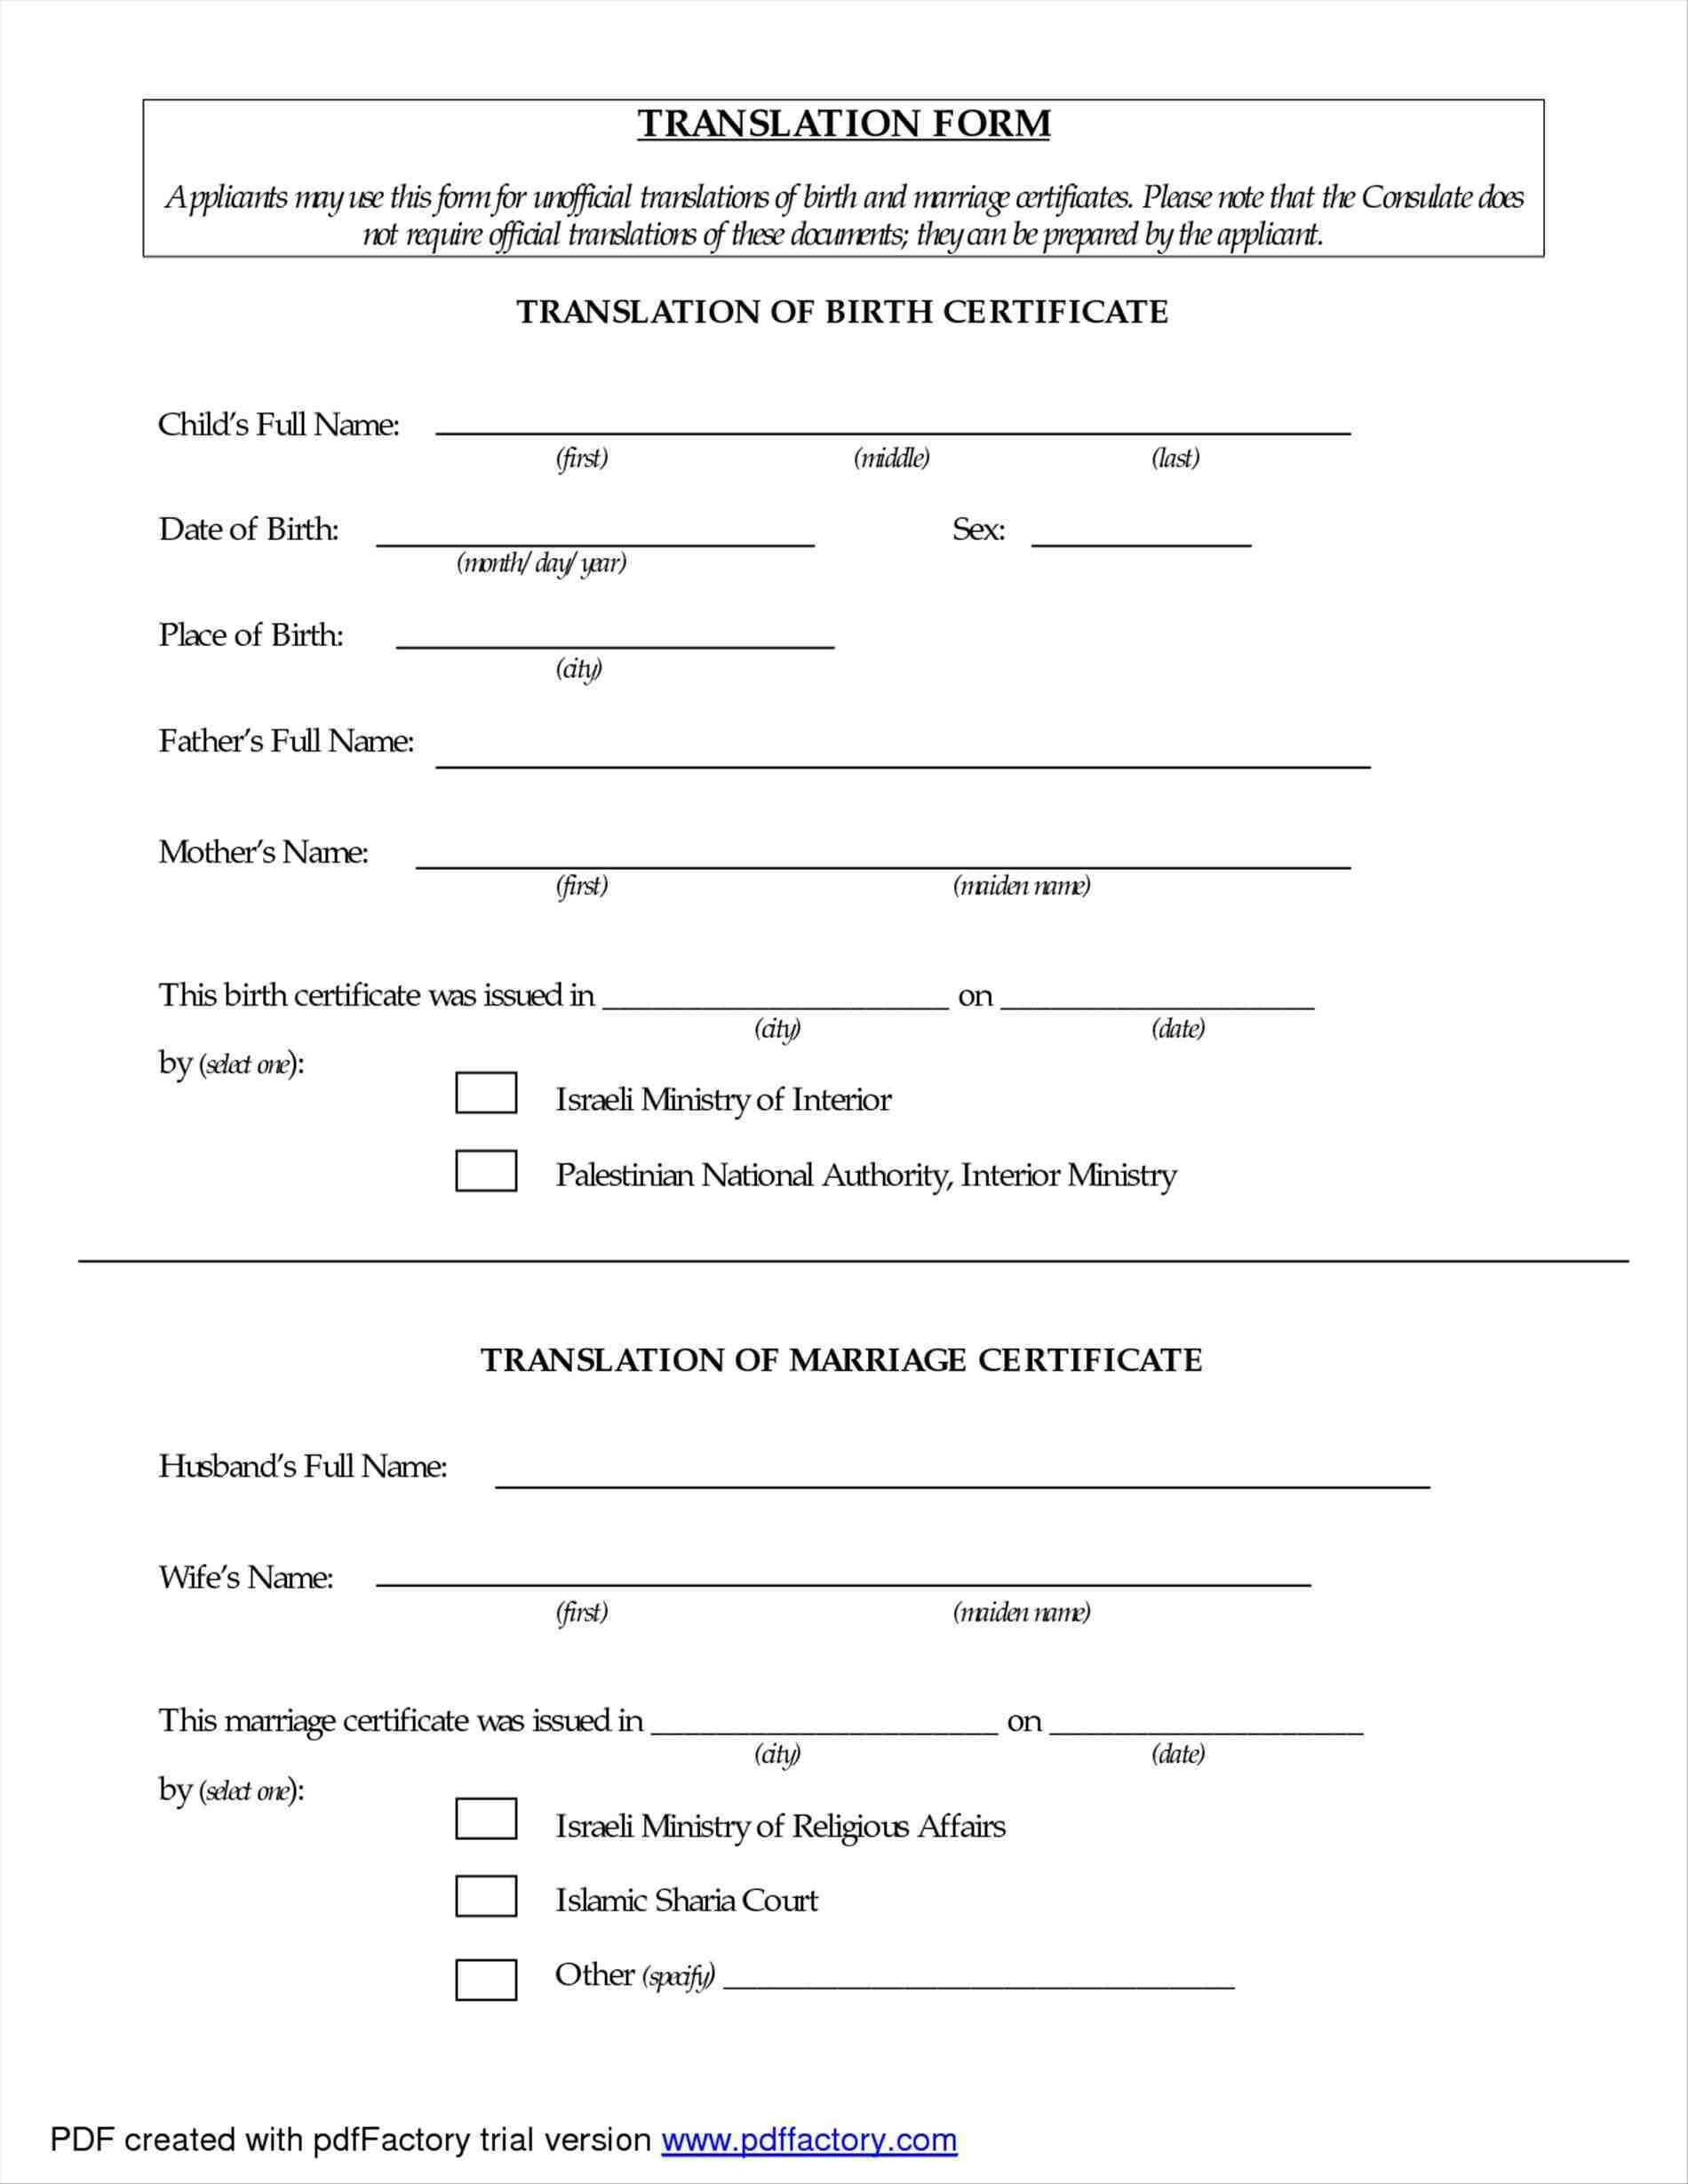 Mexican Marriage Certificate Template Brochure Templates Pertaining To Marriage Certificate Translation From Spanish To English Template